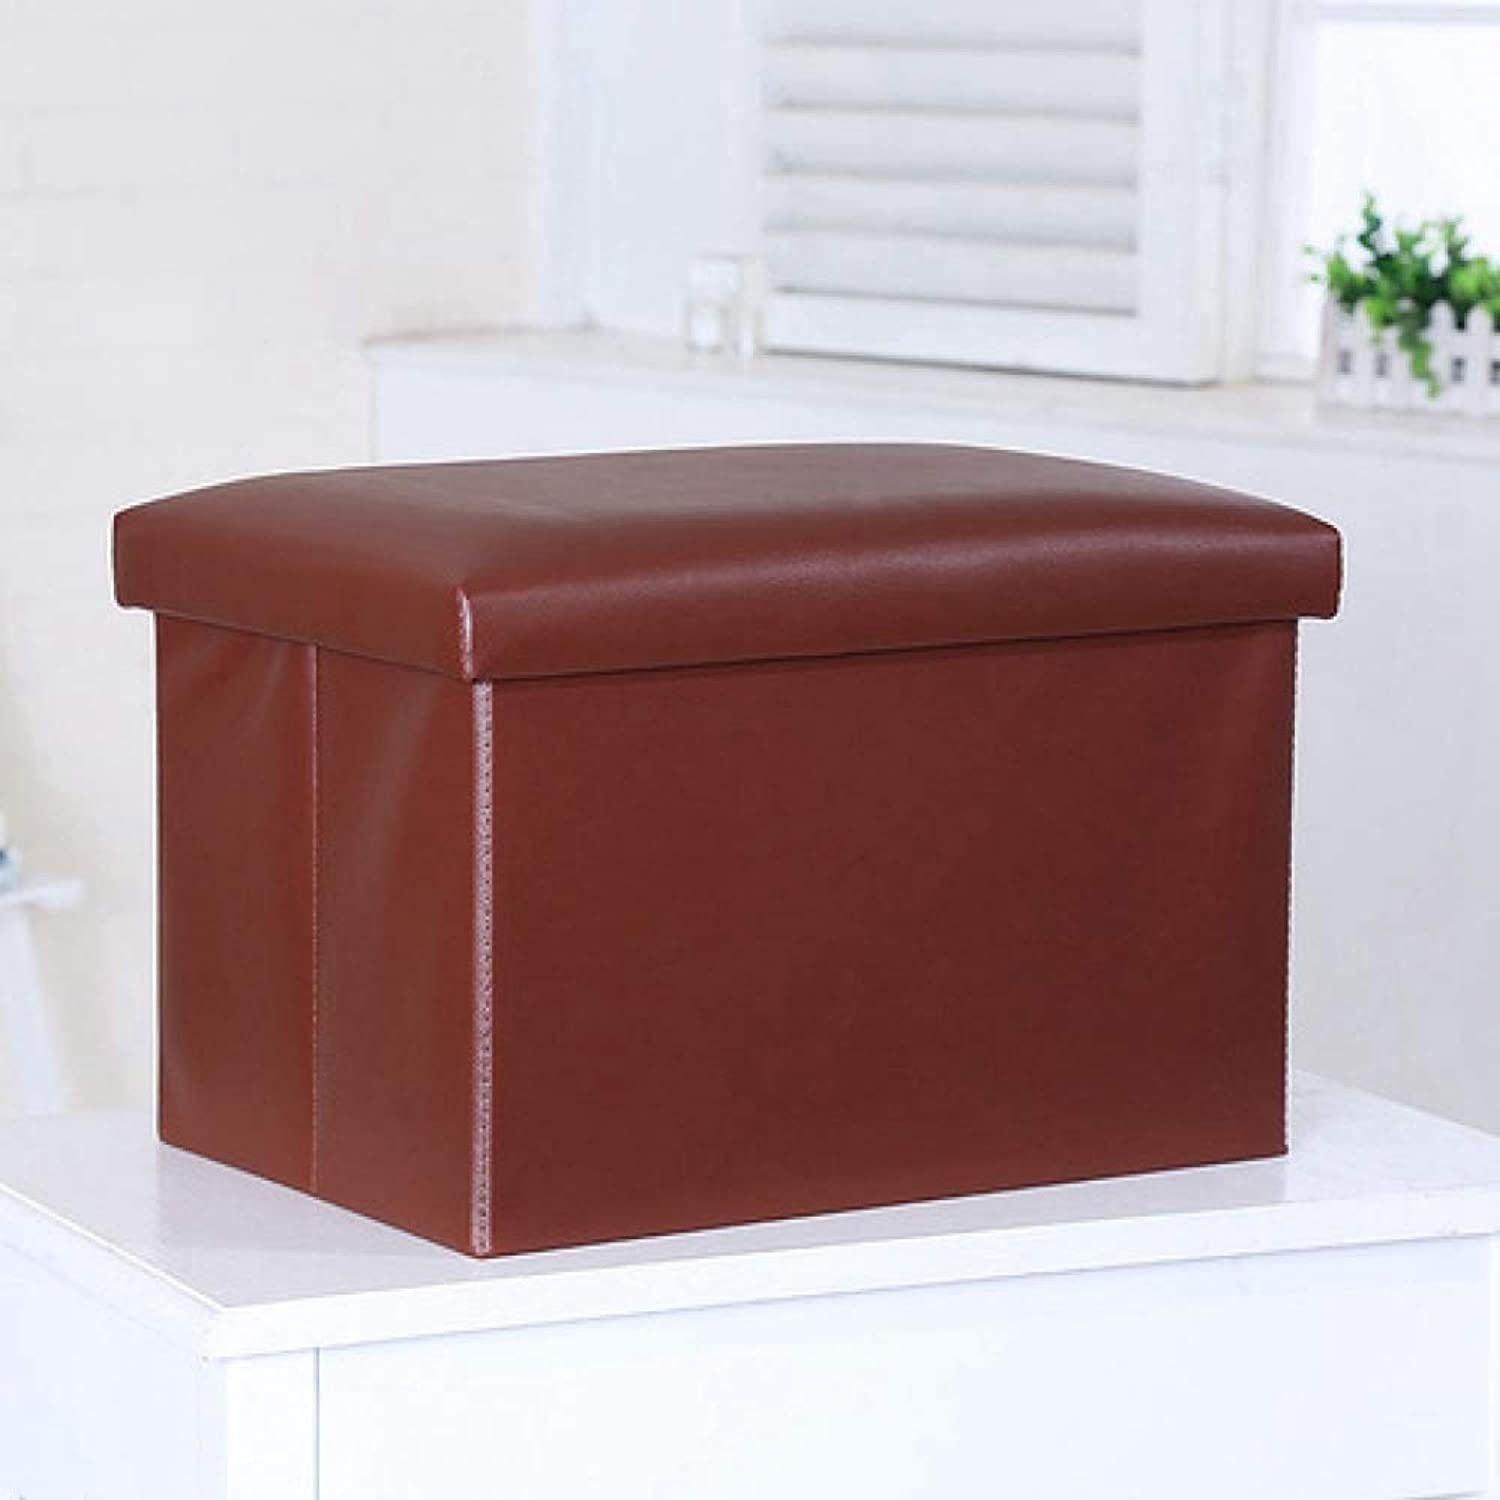 ZhiGe Storage seat,Storage Storage shoes Bench Folding Rectangular Leather Sofa Storage Stool